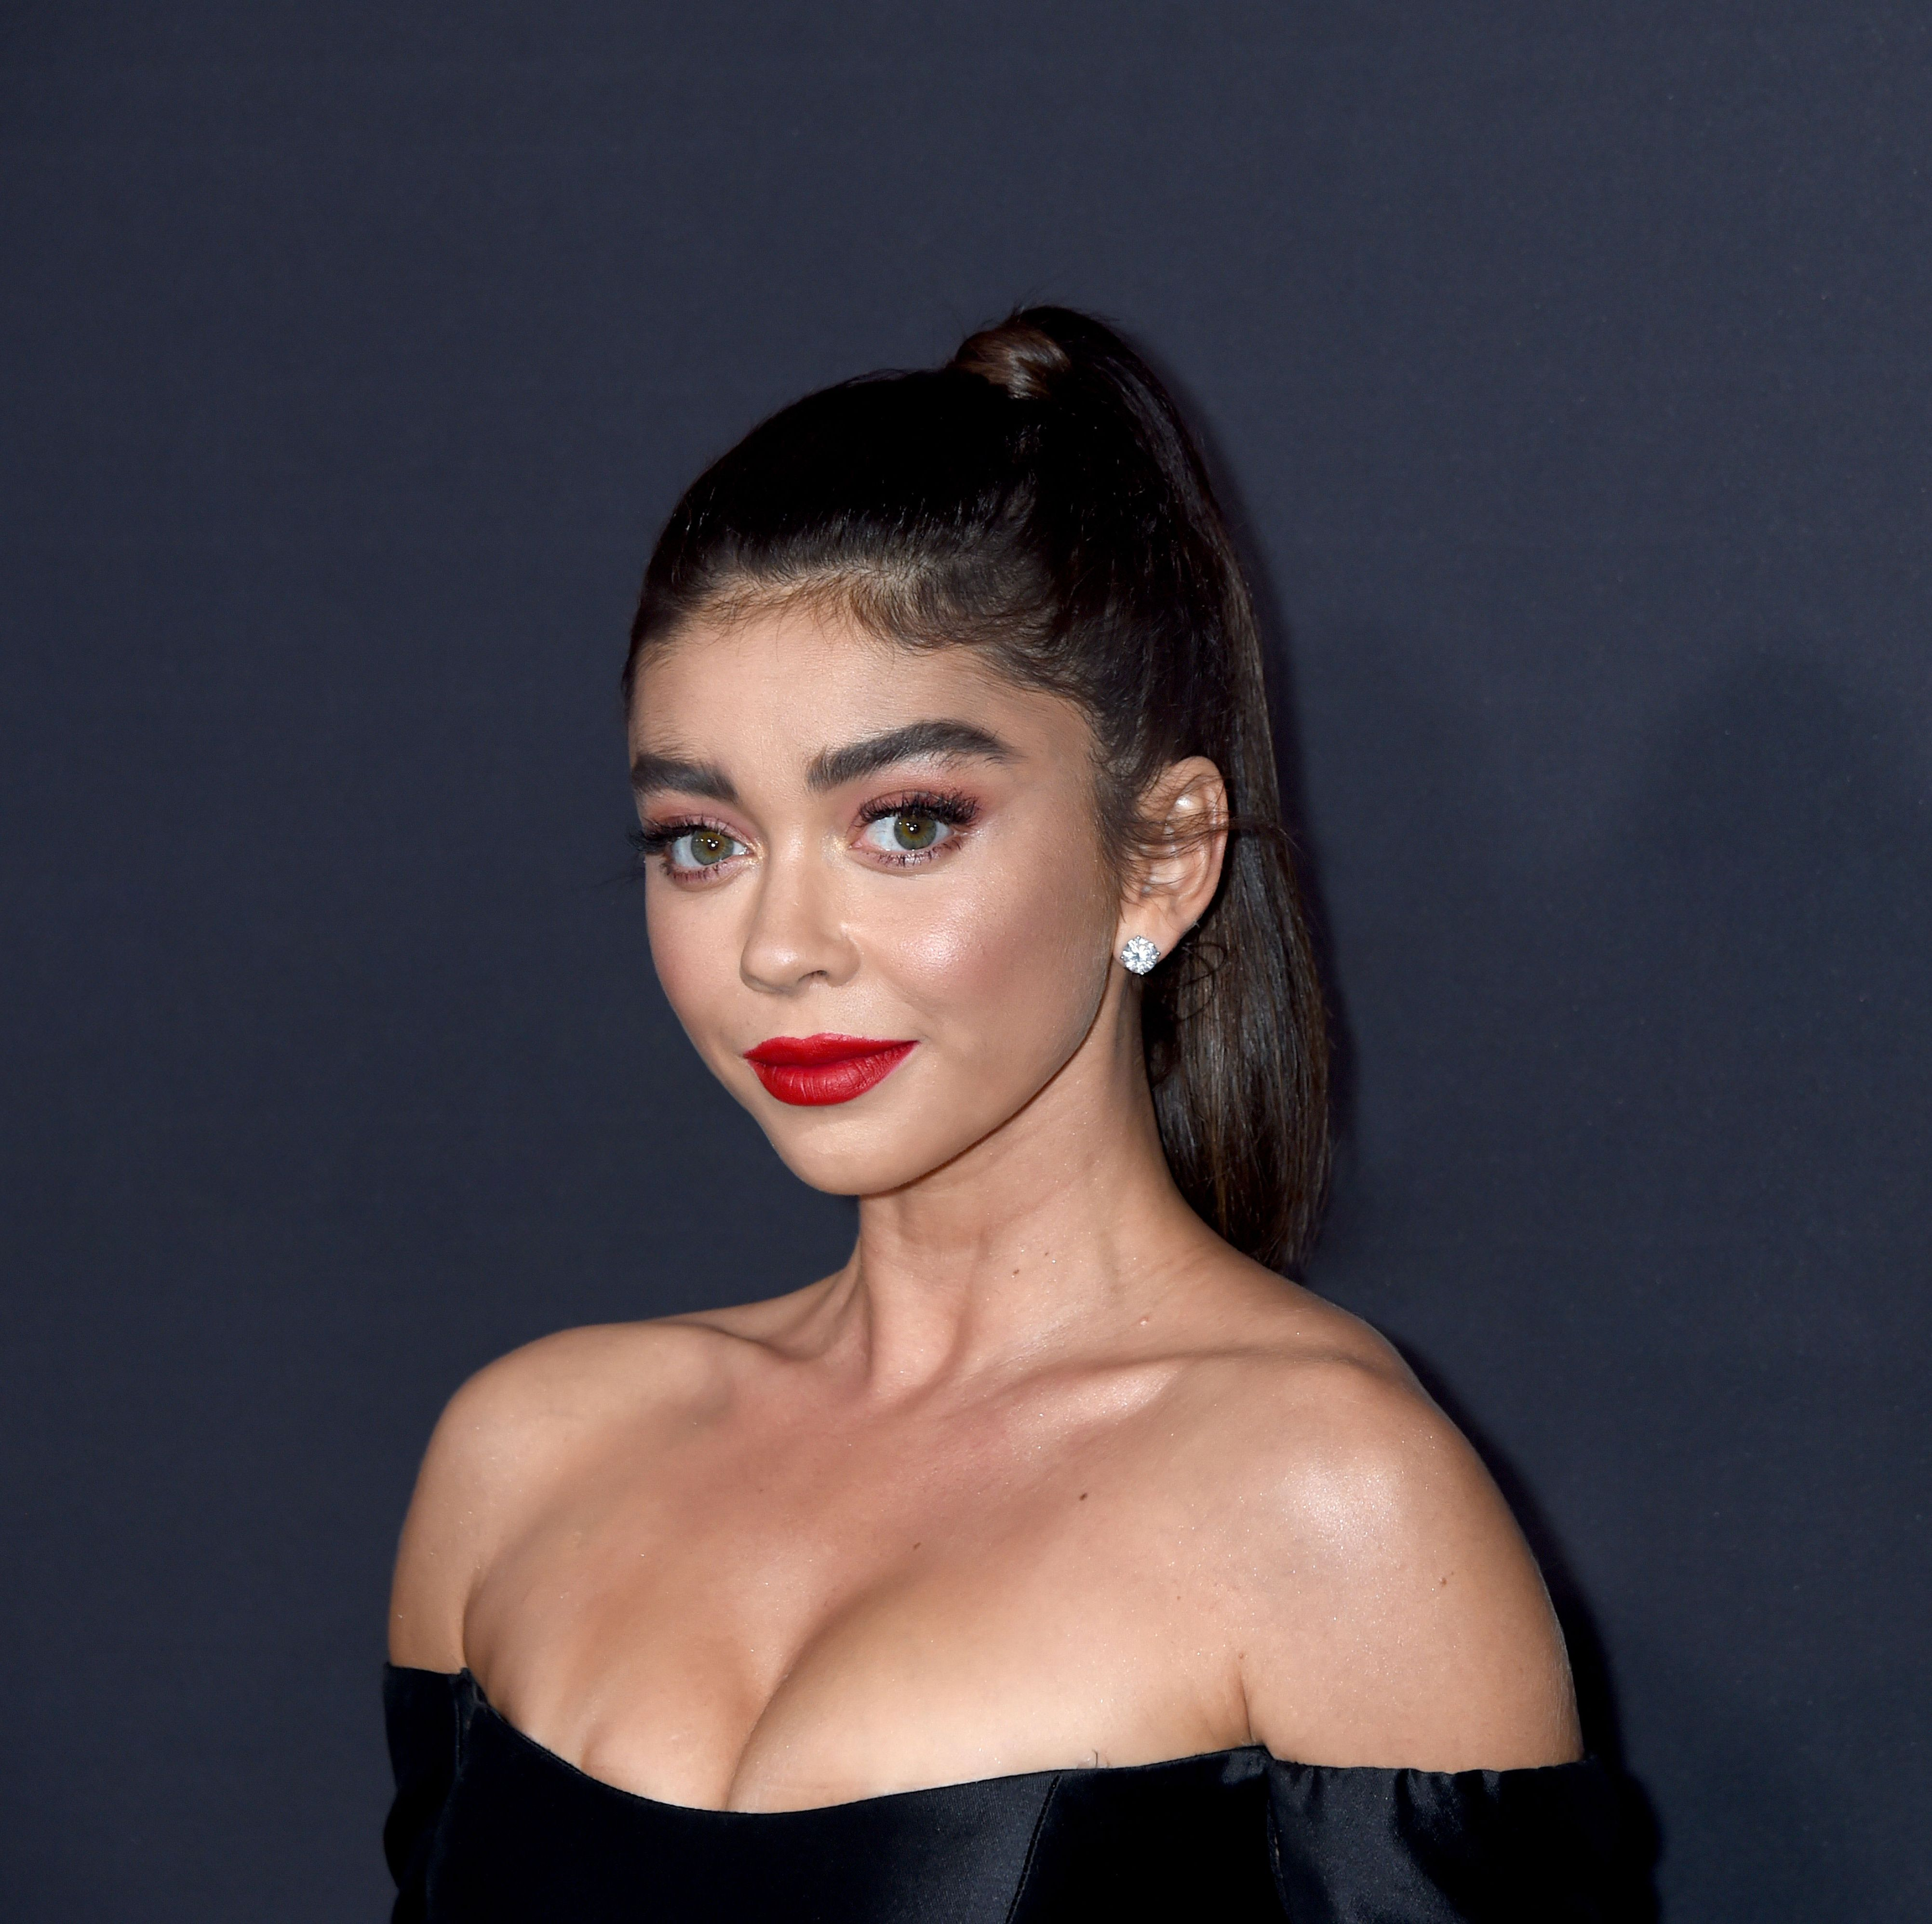 Sarah Hyland Got a Shaggy Lob and Looks Totally Different